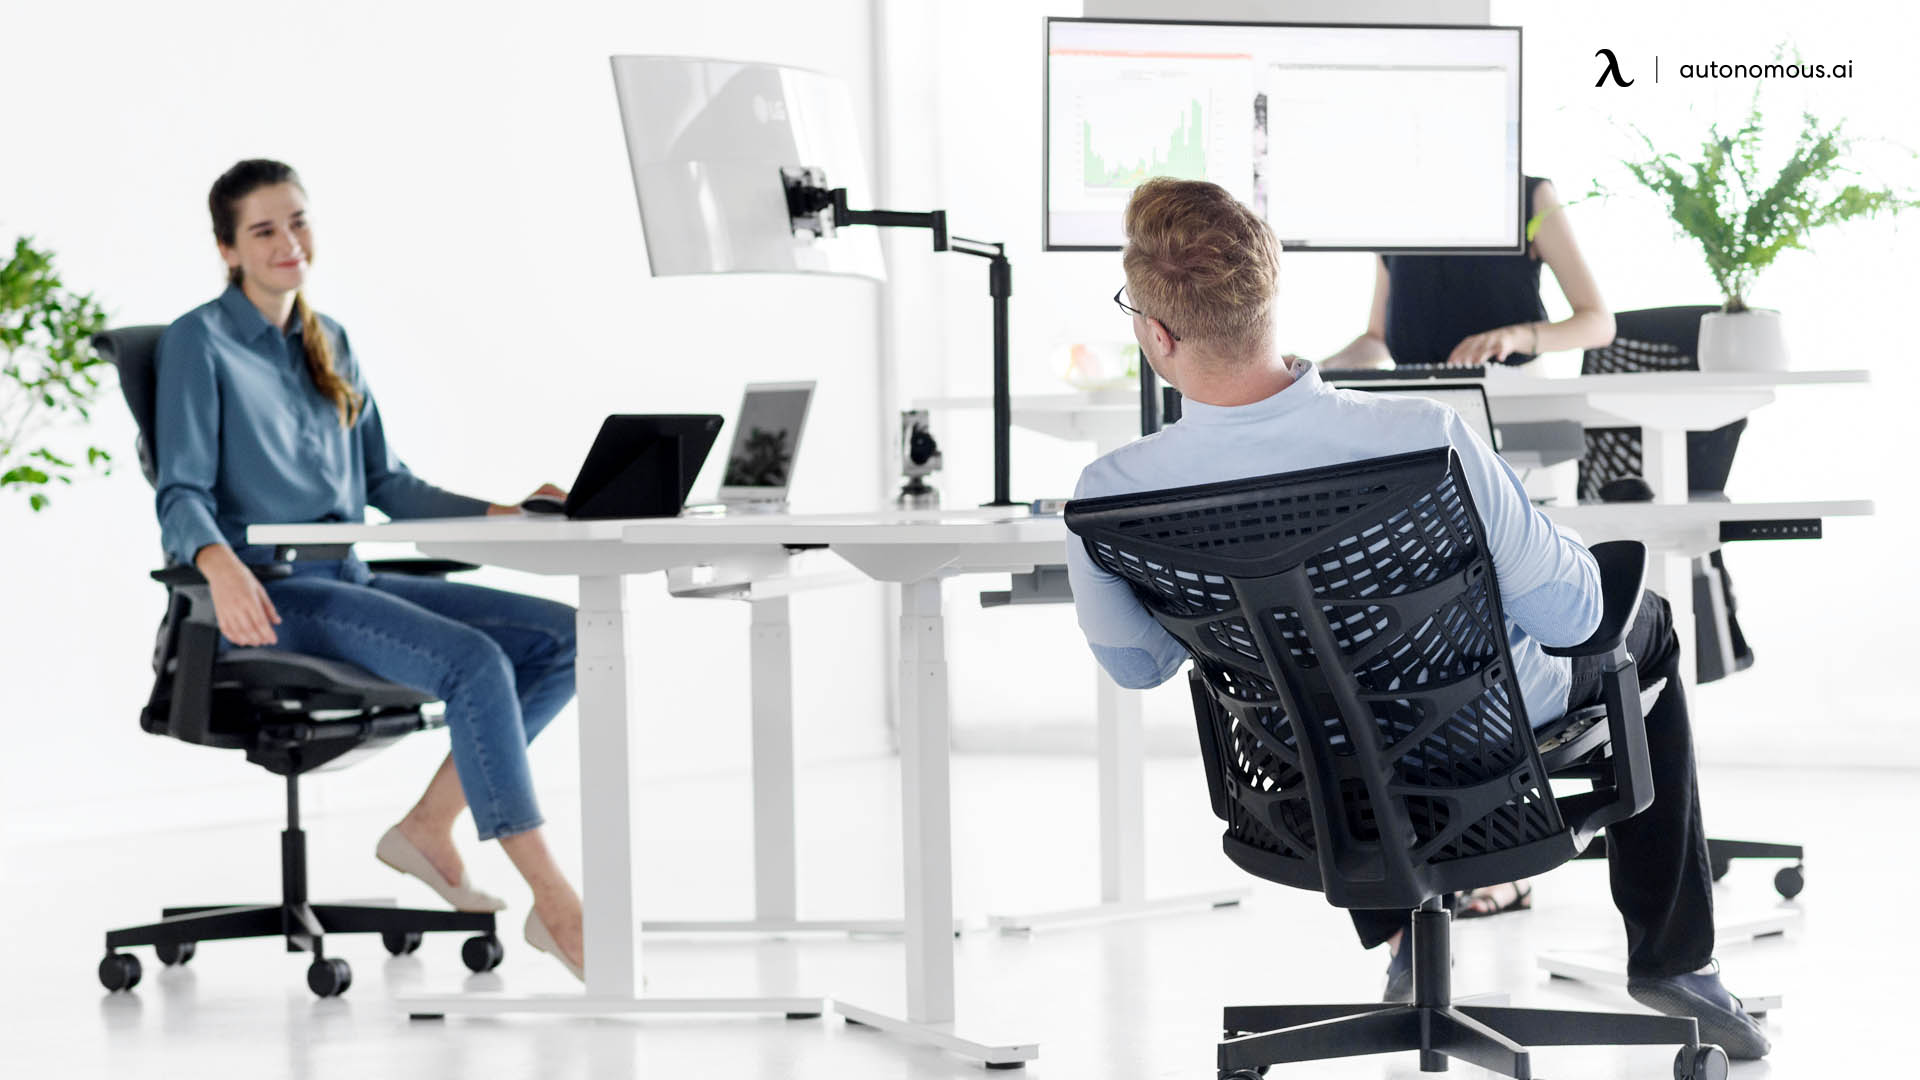 What is The Adjustable Depth Feature on an Ergonomic Chair?